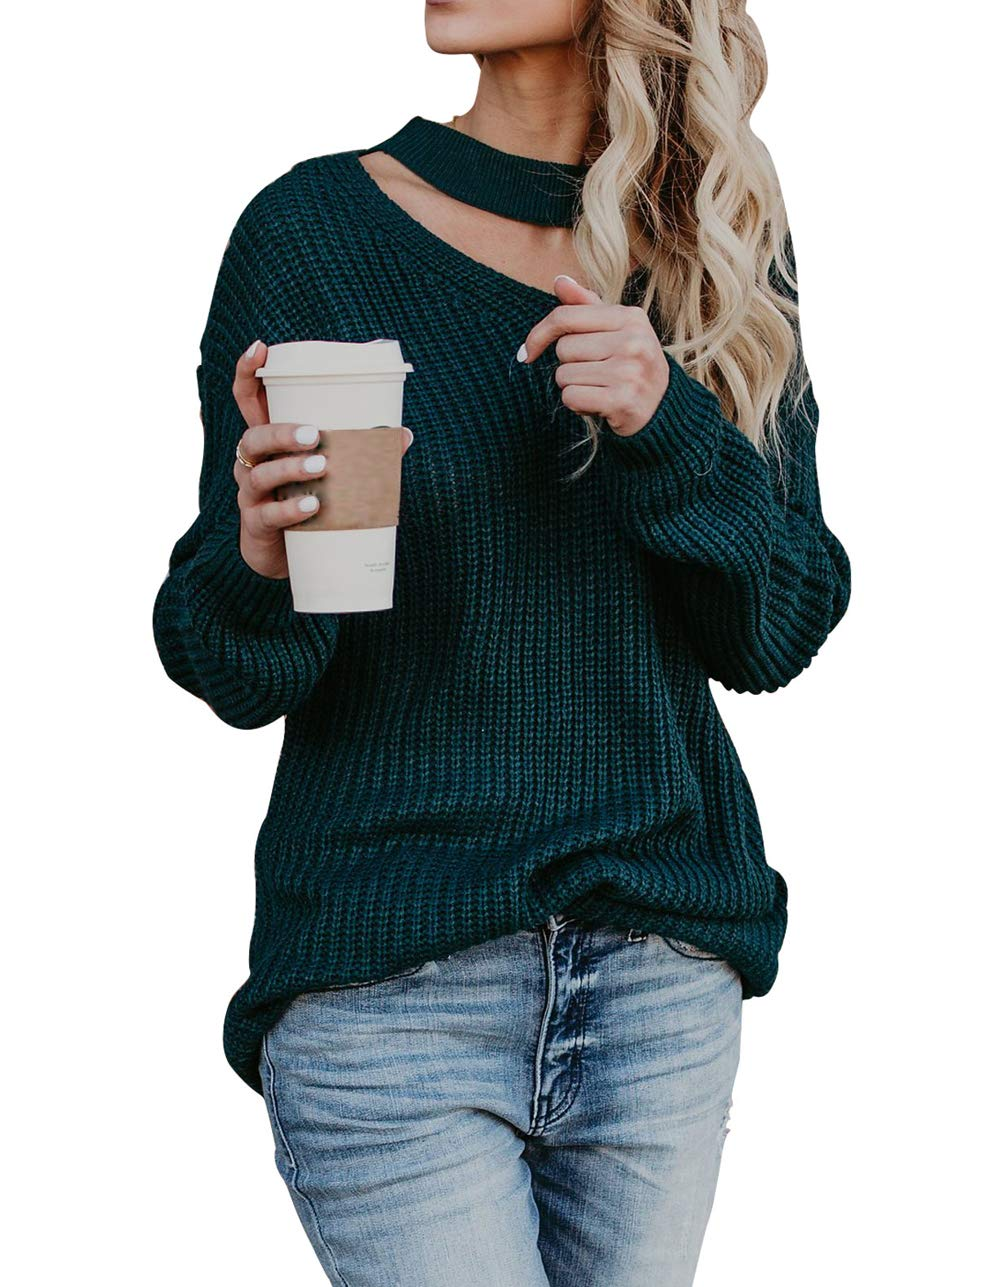 LovInParis Womens Casual Loose Knits Sweater Pullover Fashion Crew Neck Winter Tops